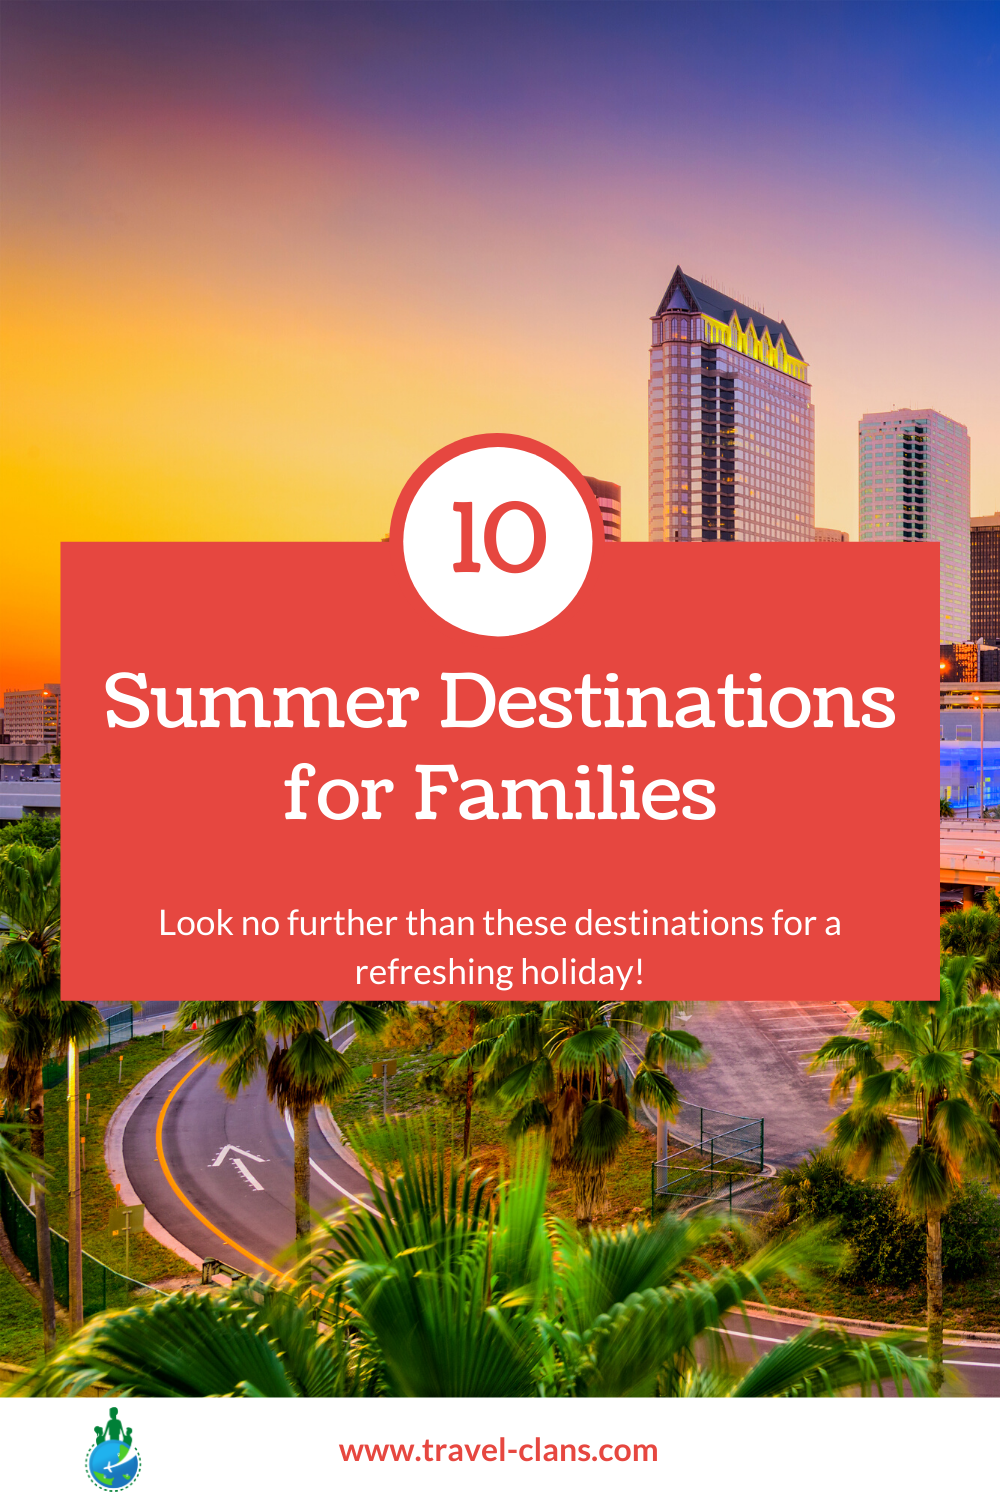 Vacation like the Rich & Famous at these 10 summer destinations for families!  #travelclans #SummerDestinations #SummerVacations #Summer #Tampa #Oslo #Cardiff #SanMarino #Vaduz #Cali #Mexico #FaroeIslands #Newfoundland #Canada #Colombia #Marseille #France #Wales #USA #Norway